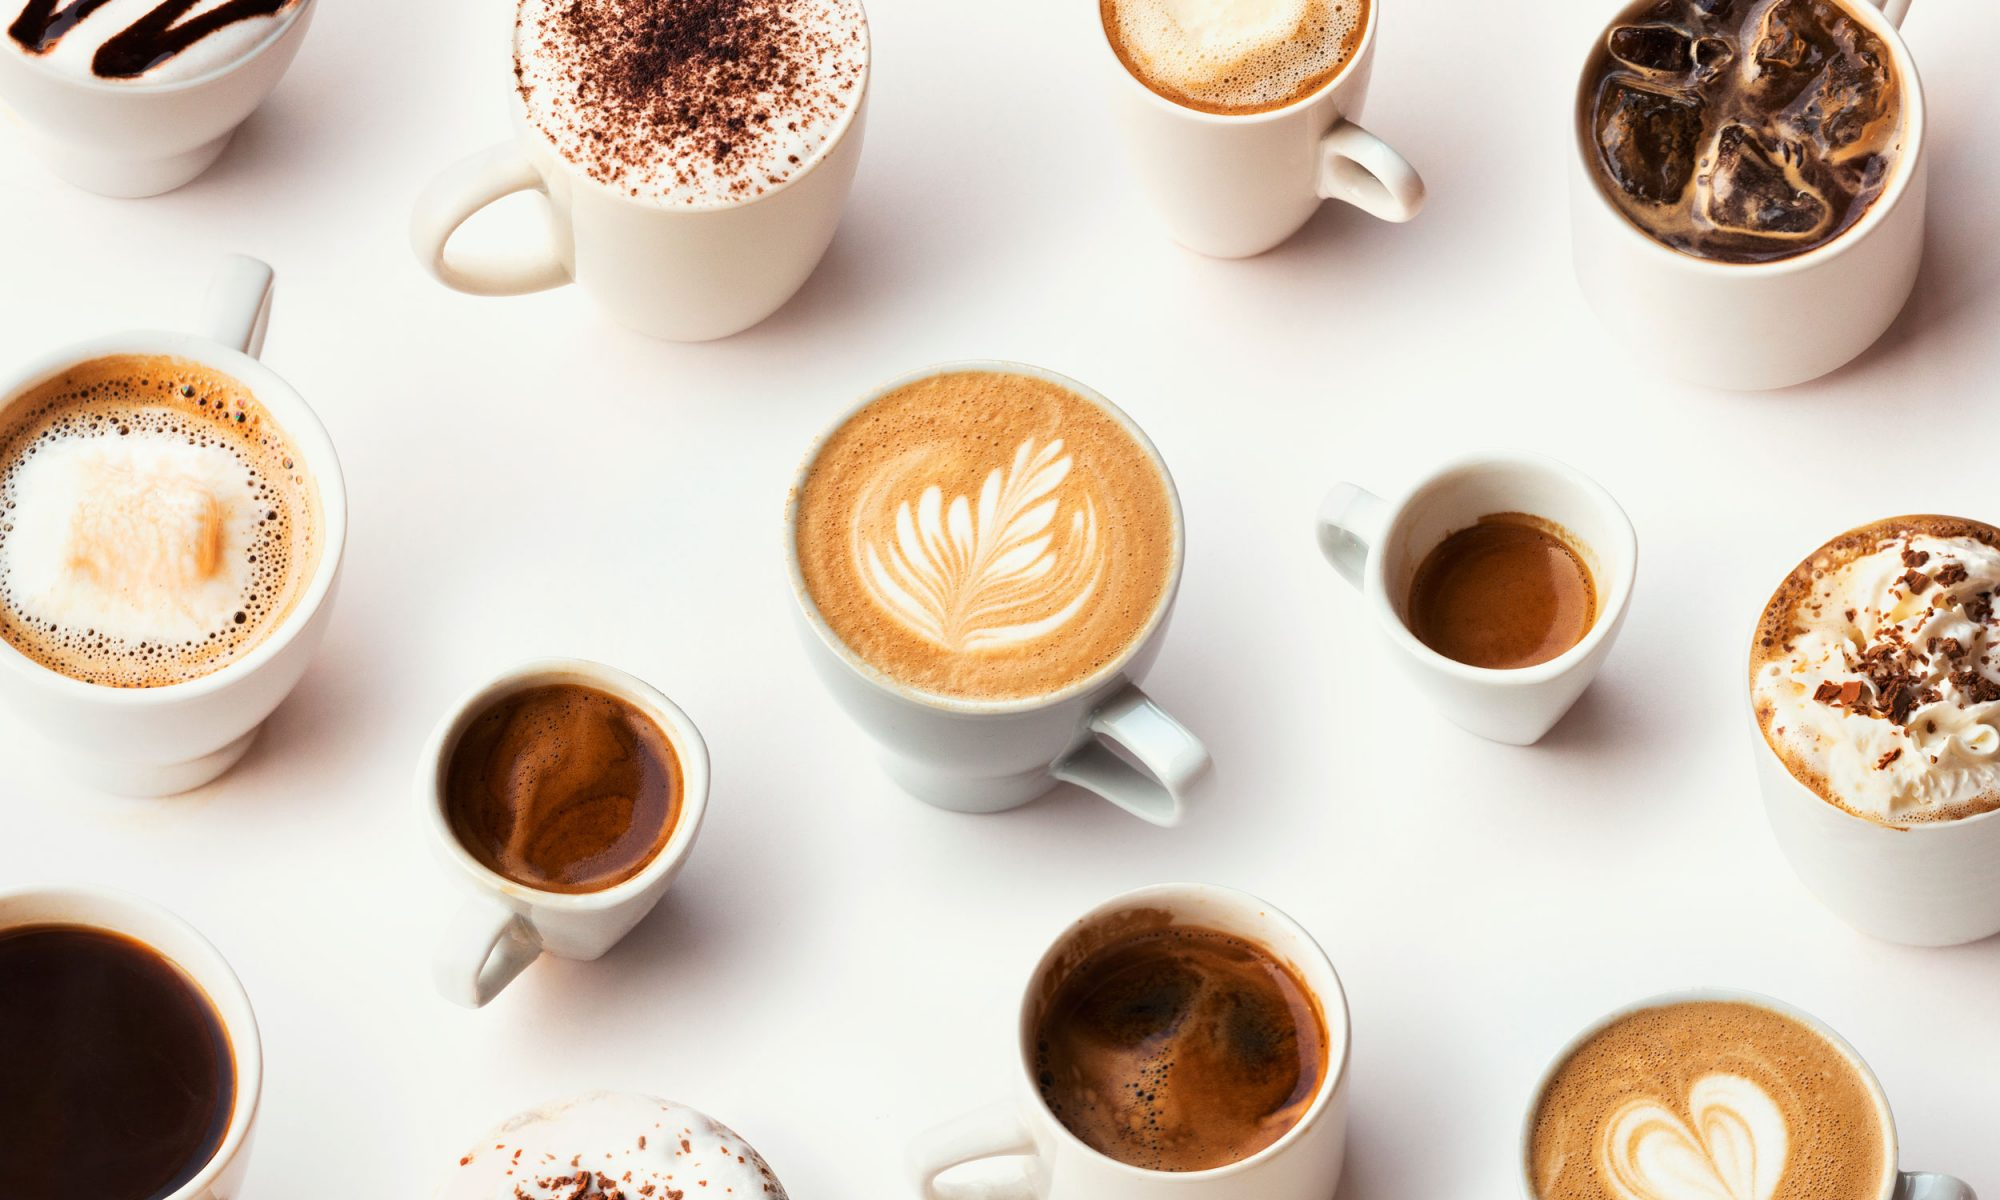 EC: Drinking Coffee Could Prevent Heart Disease and Stroke